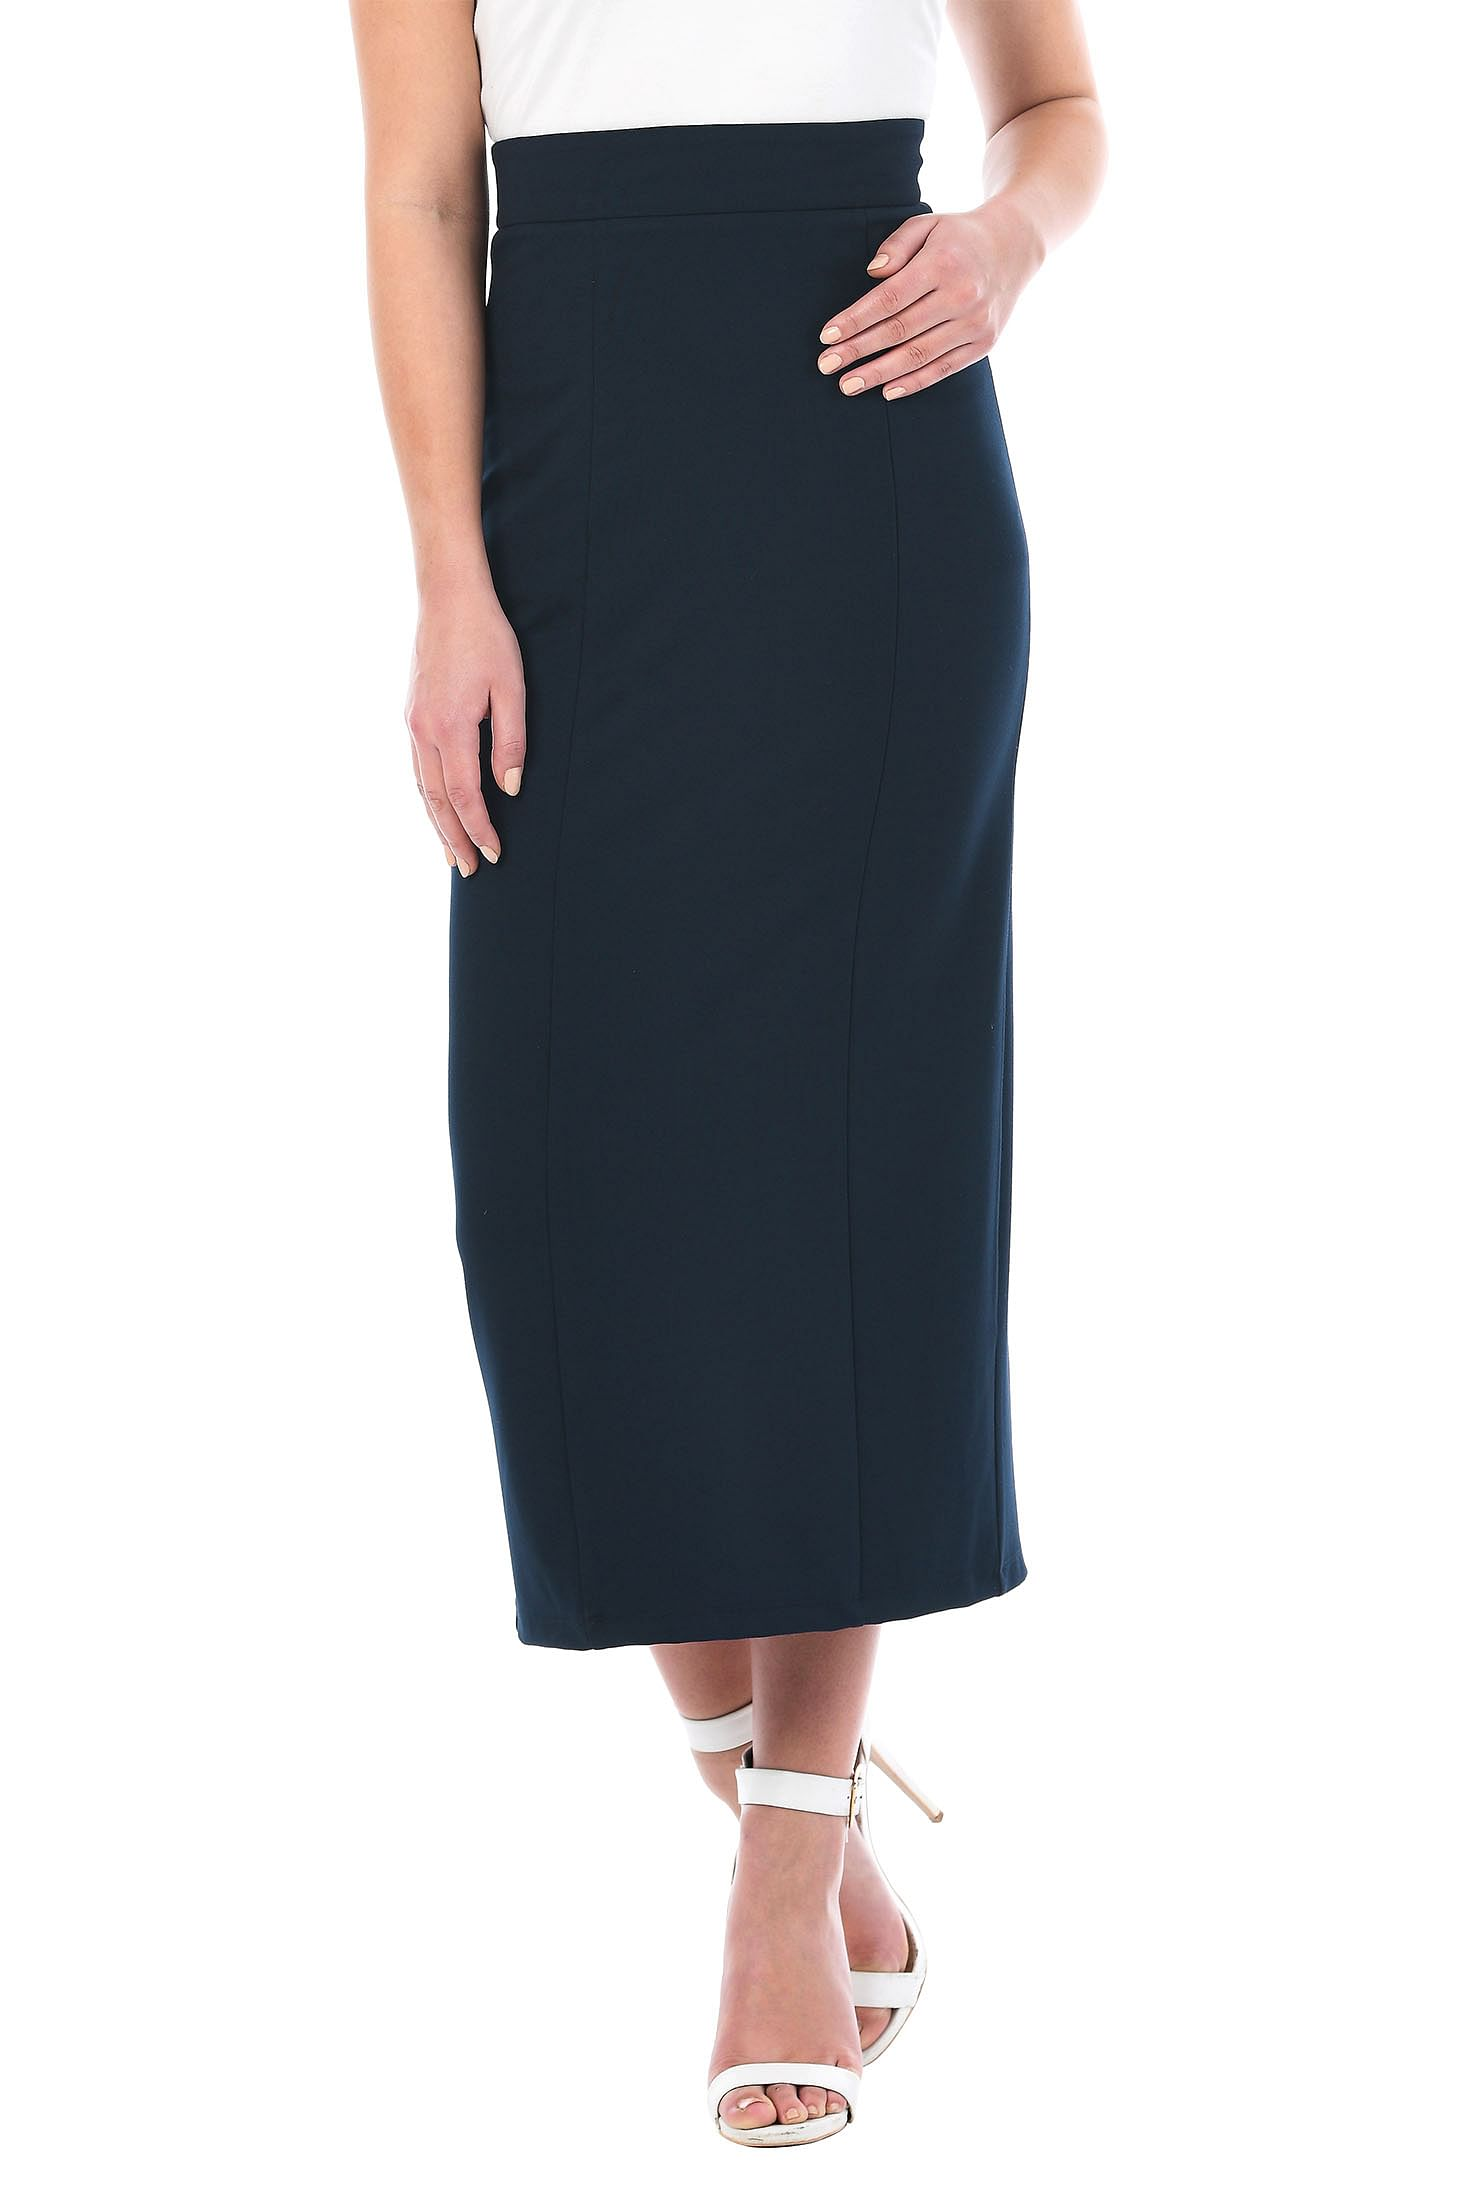 a2e3145ae6 above ankle length skirts, Back vent skirts, elastic back waist skirts, high